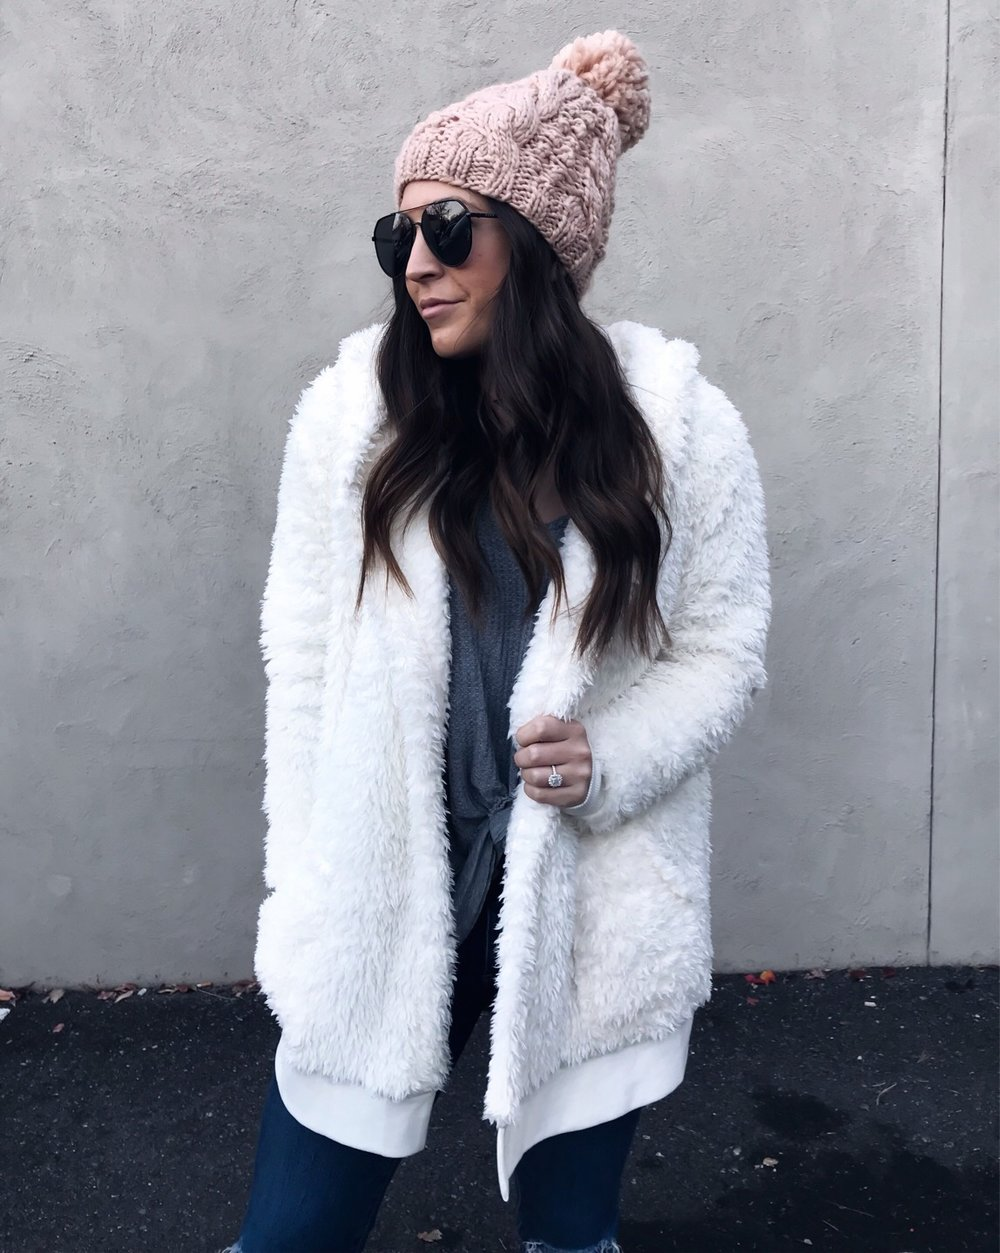 Weekend Sales & Instagram Round Up | Pine Barren Beauty | winter fashion, winter outfit idea, winter essentials, teddy coat, blush beanie, cozy outfit idea